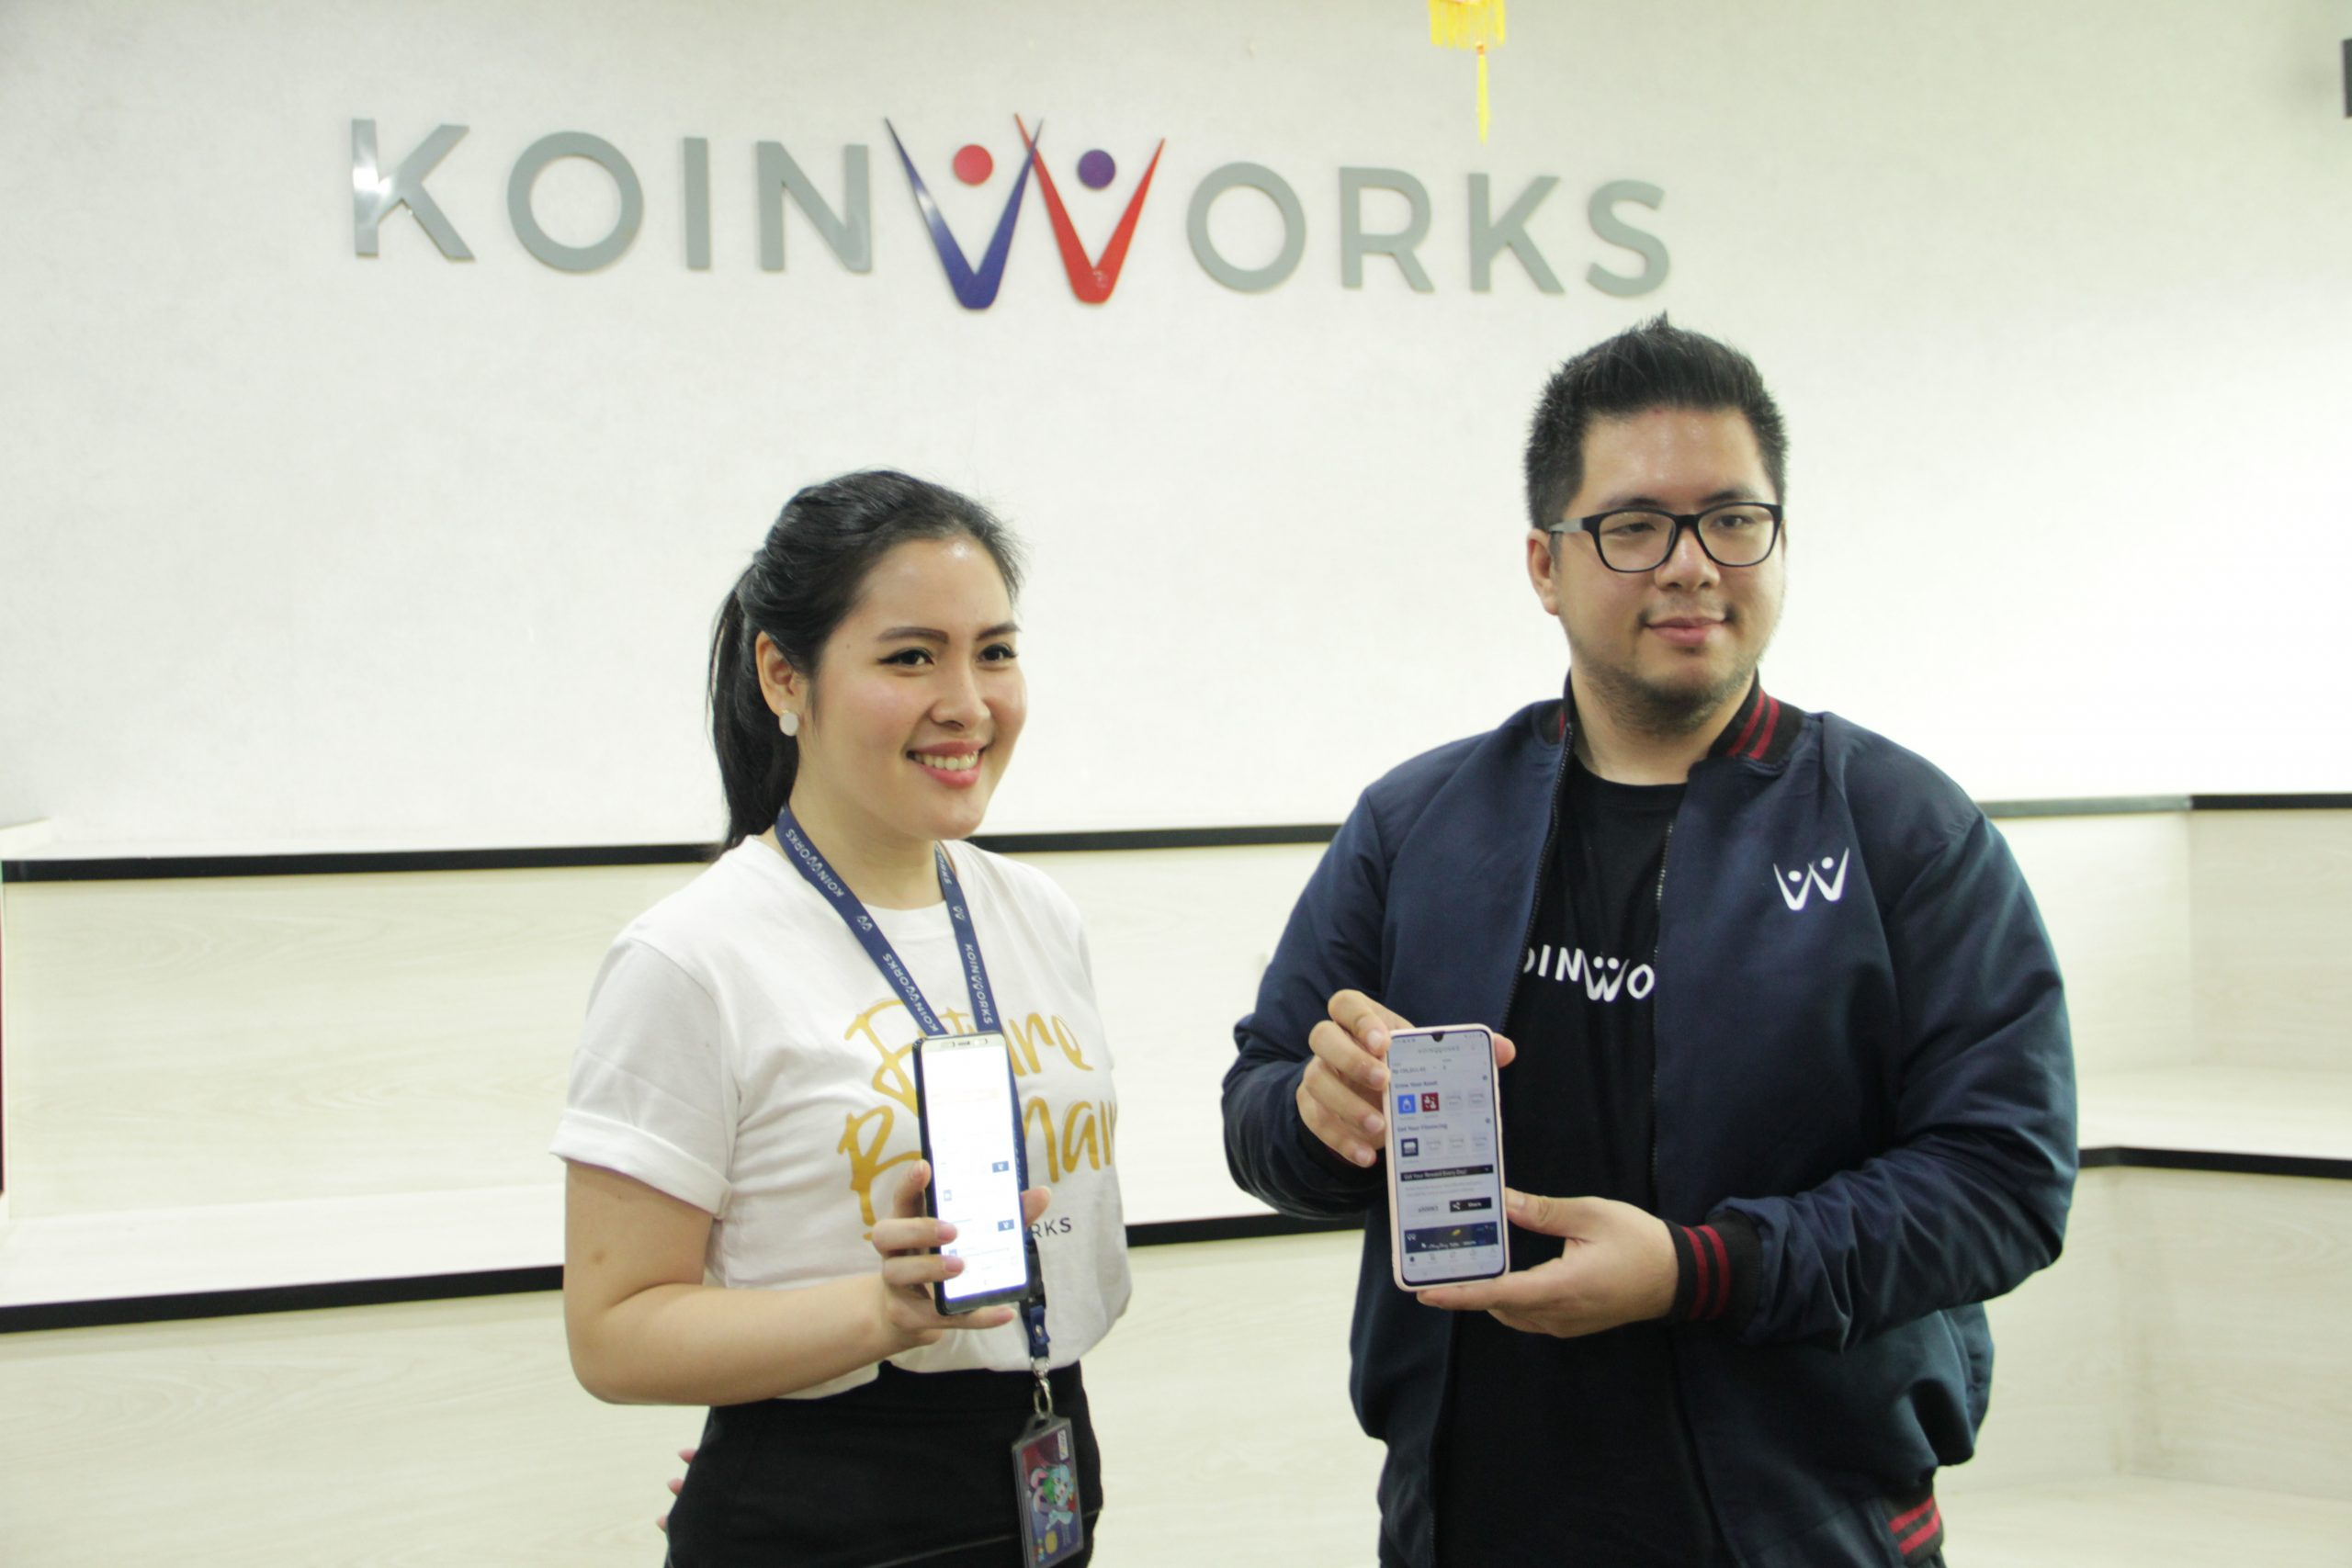 How KoinWorks Attracts Consumers Amid False Investment Concerns